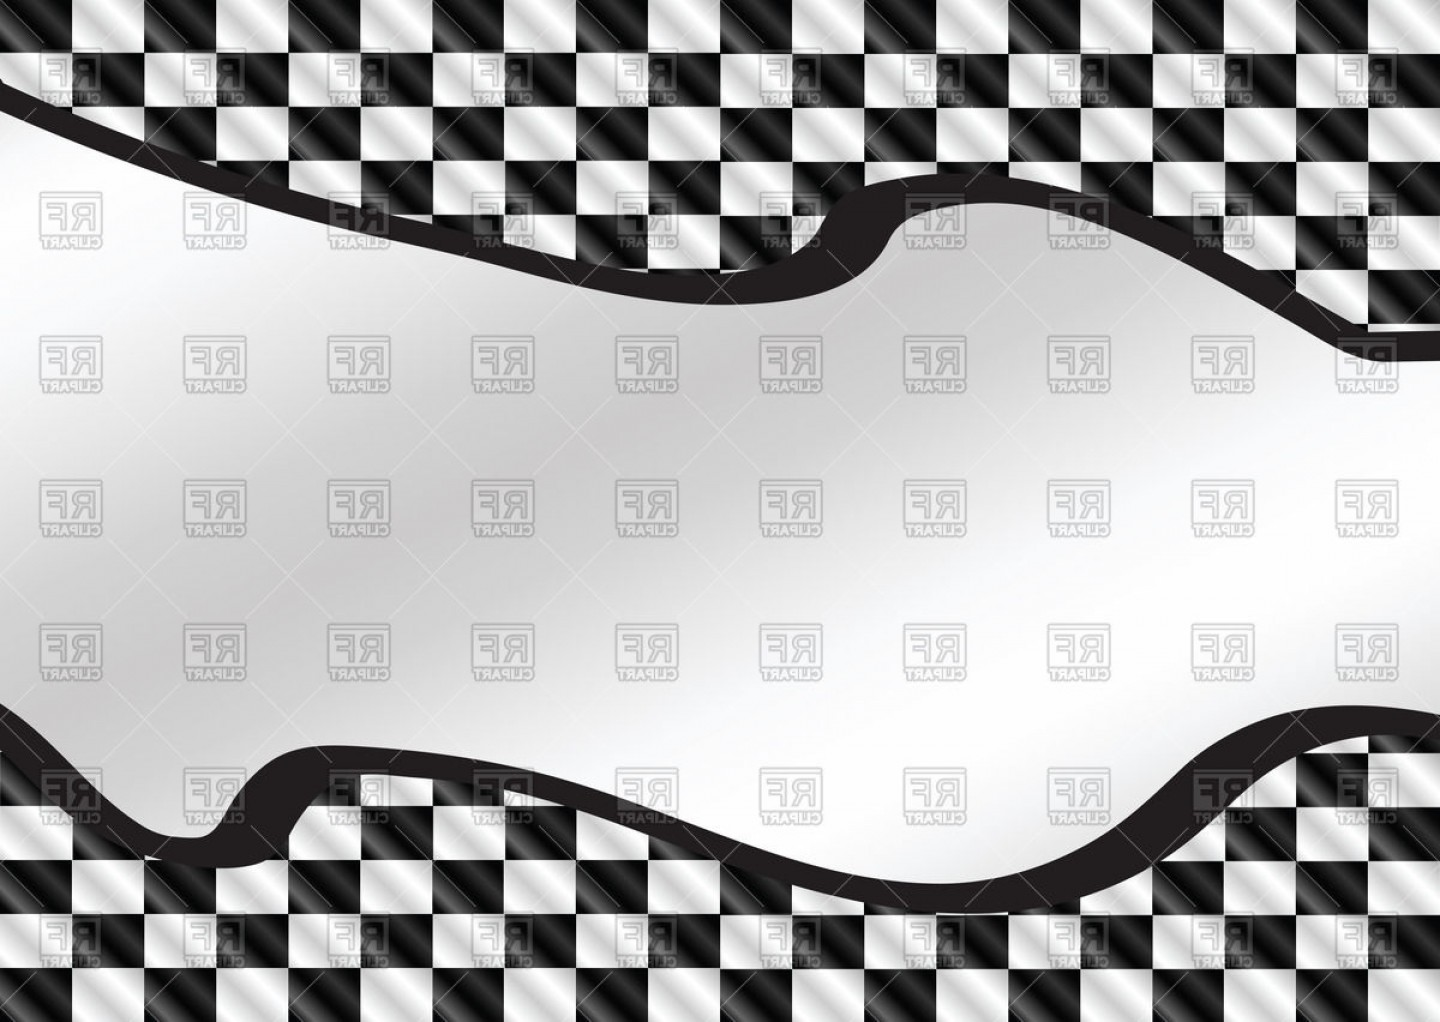 Racing Background Vector at GetDrawings com | Free for personal use